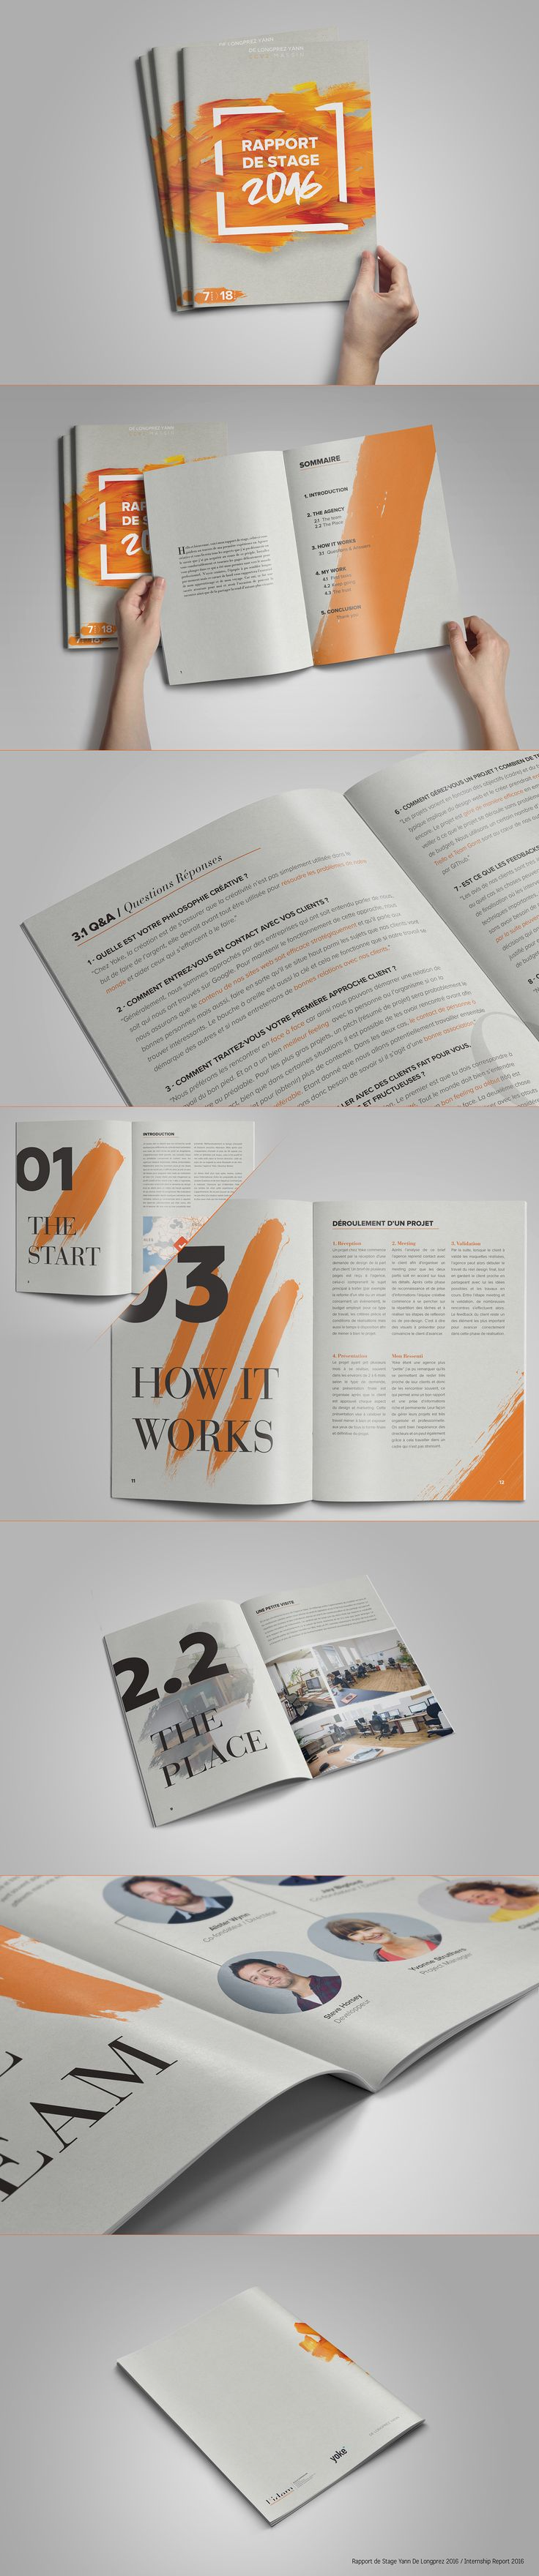 """Check out this @Behance project: """"Internship Report 2016 / Rapport de Stage 2016"""" https://www.behance.net/gallery/44550071/Internship-Report-2016-Rapport-de-Stage-2016"""